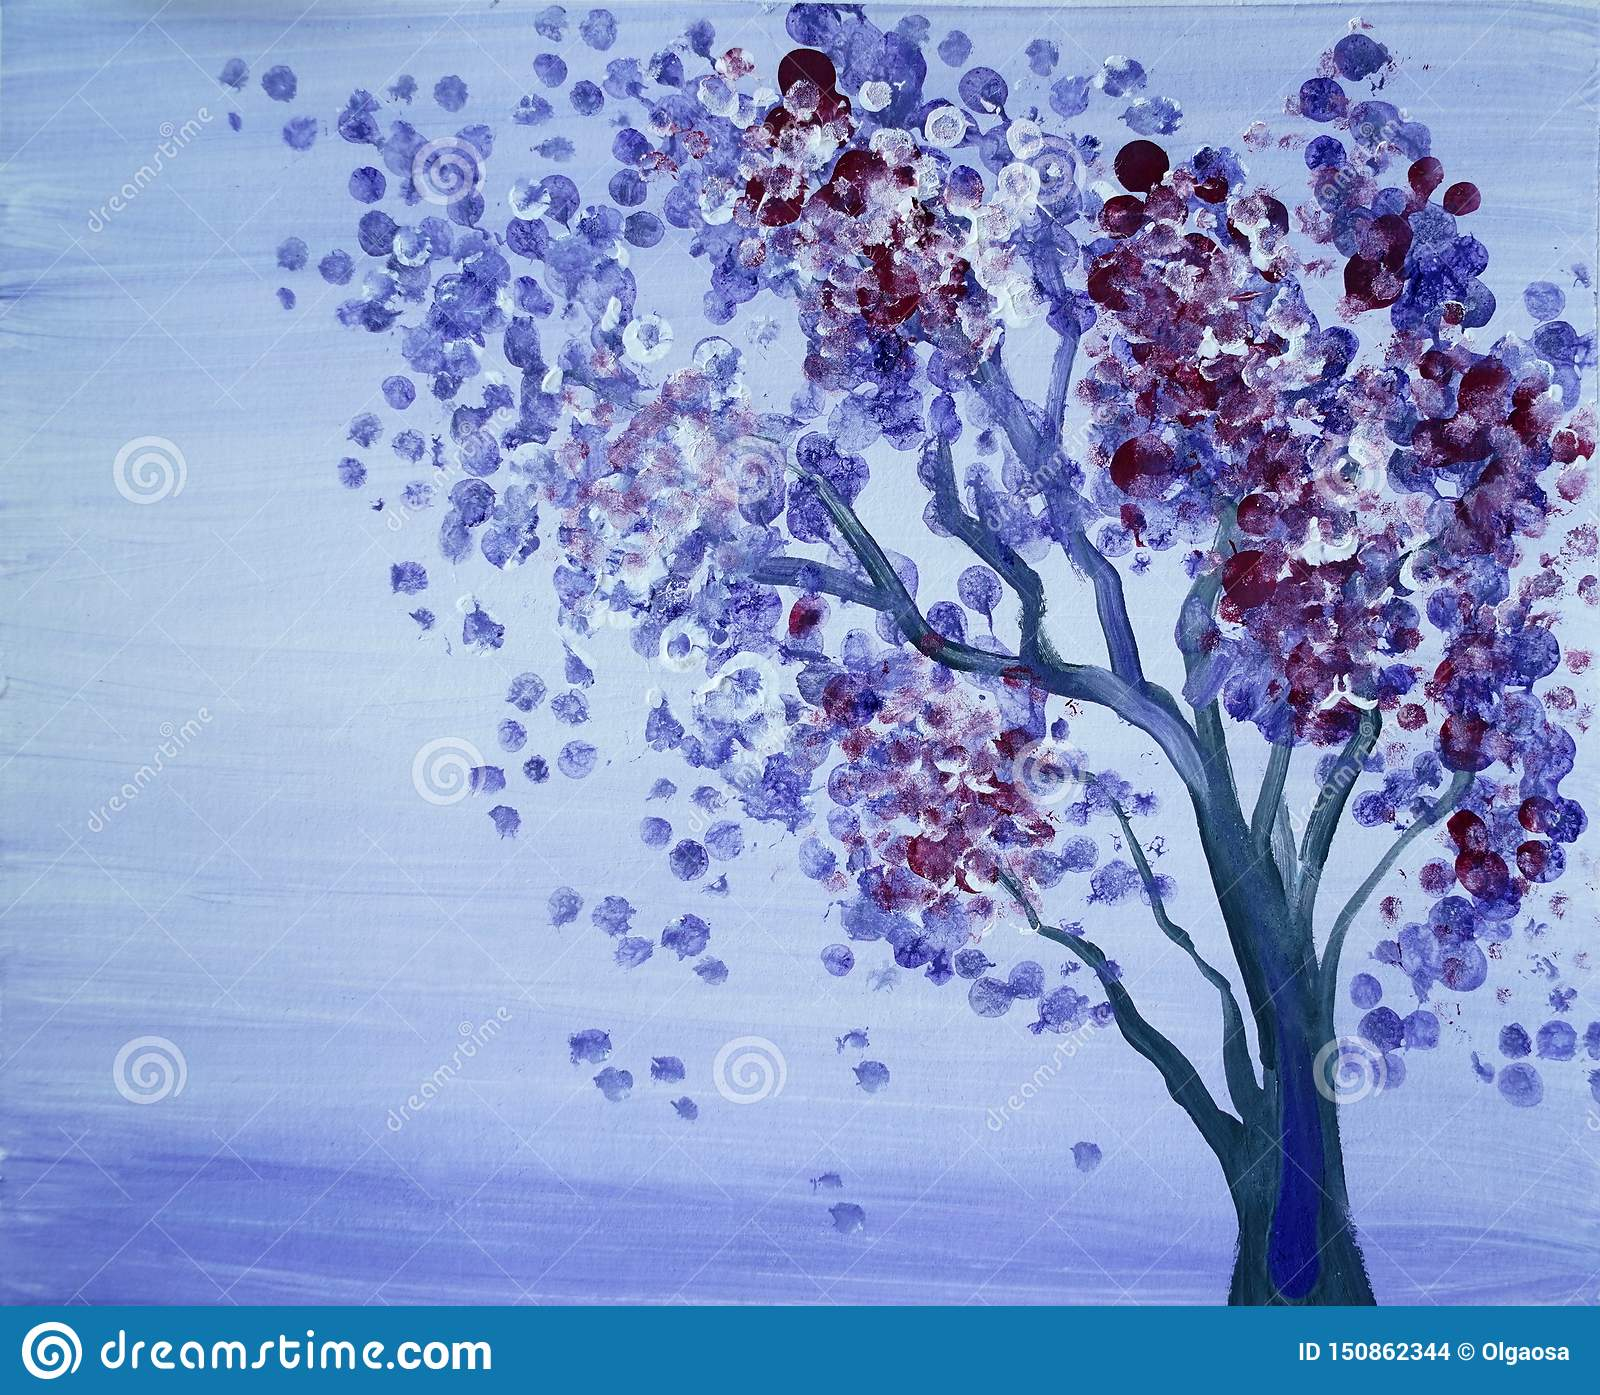 Drawing Of Bright Pink Purple Tree Blue Sky Stock Photo Image Of Painting Landscape 150862344